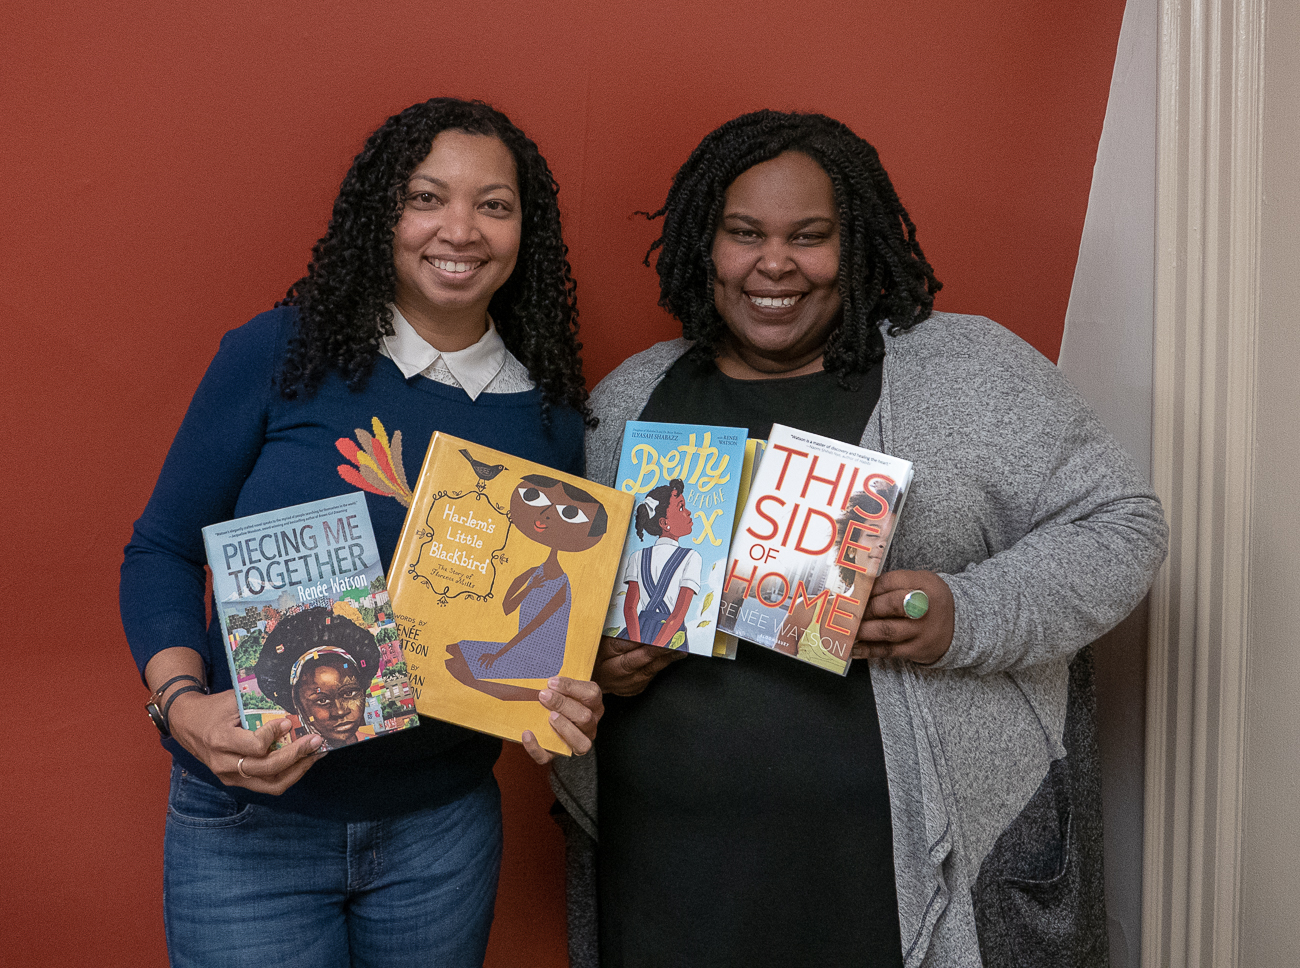 Tracey Baptiste and Renee Watson holding copies of Watson's books.